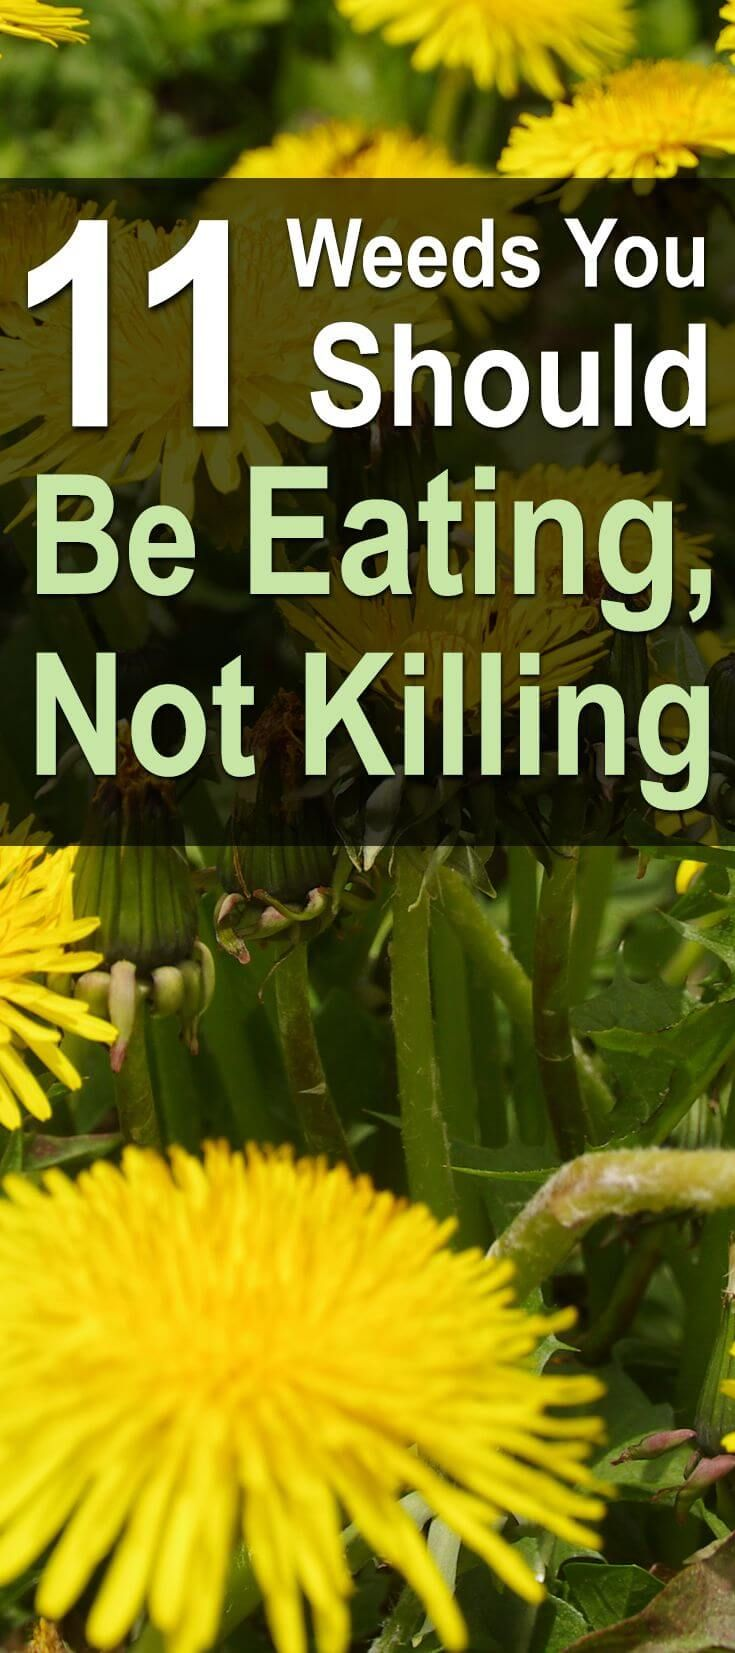 """Although most people see weeds as a nuisance, there are certain so-called """"weeds"""" that are not only edible but also quite nutritious and sustaining."""